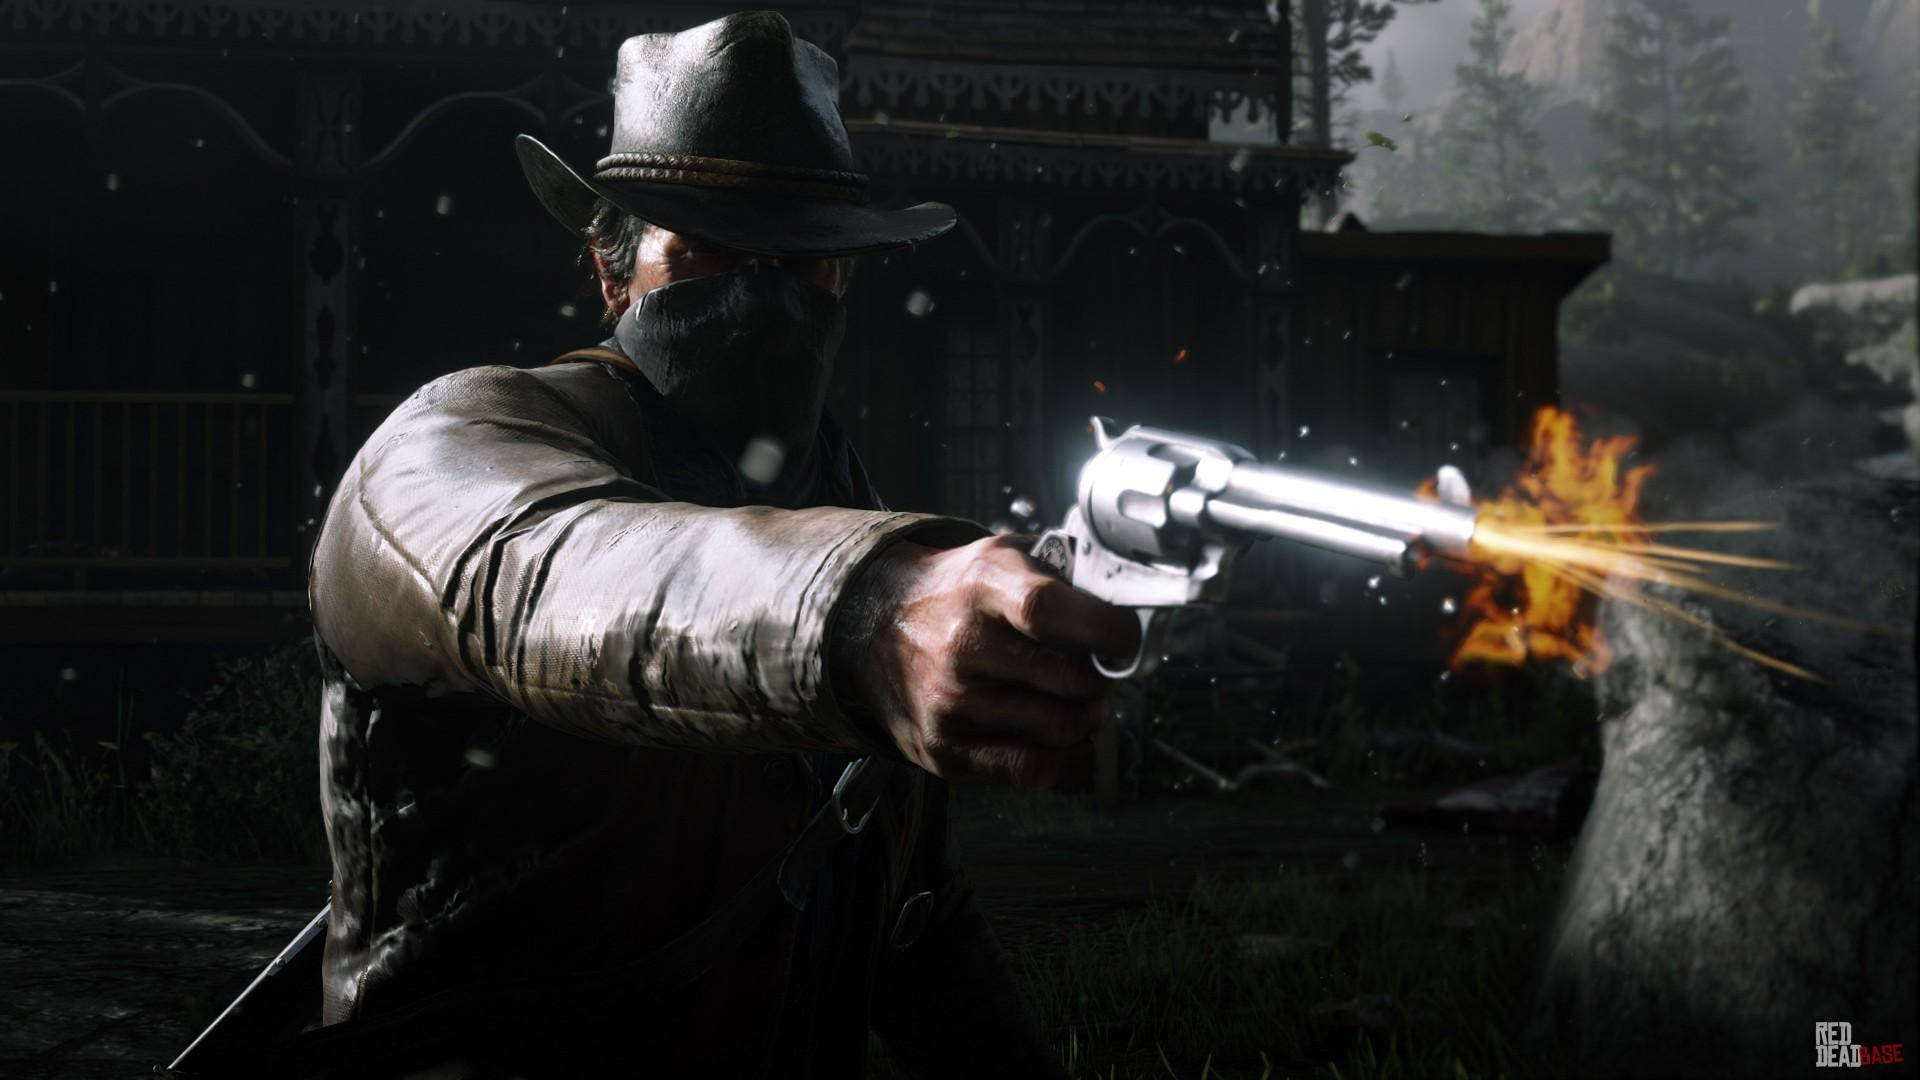 Cattleman Revolver Red Dead Redemption 2 Weapons Database Red